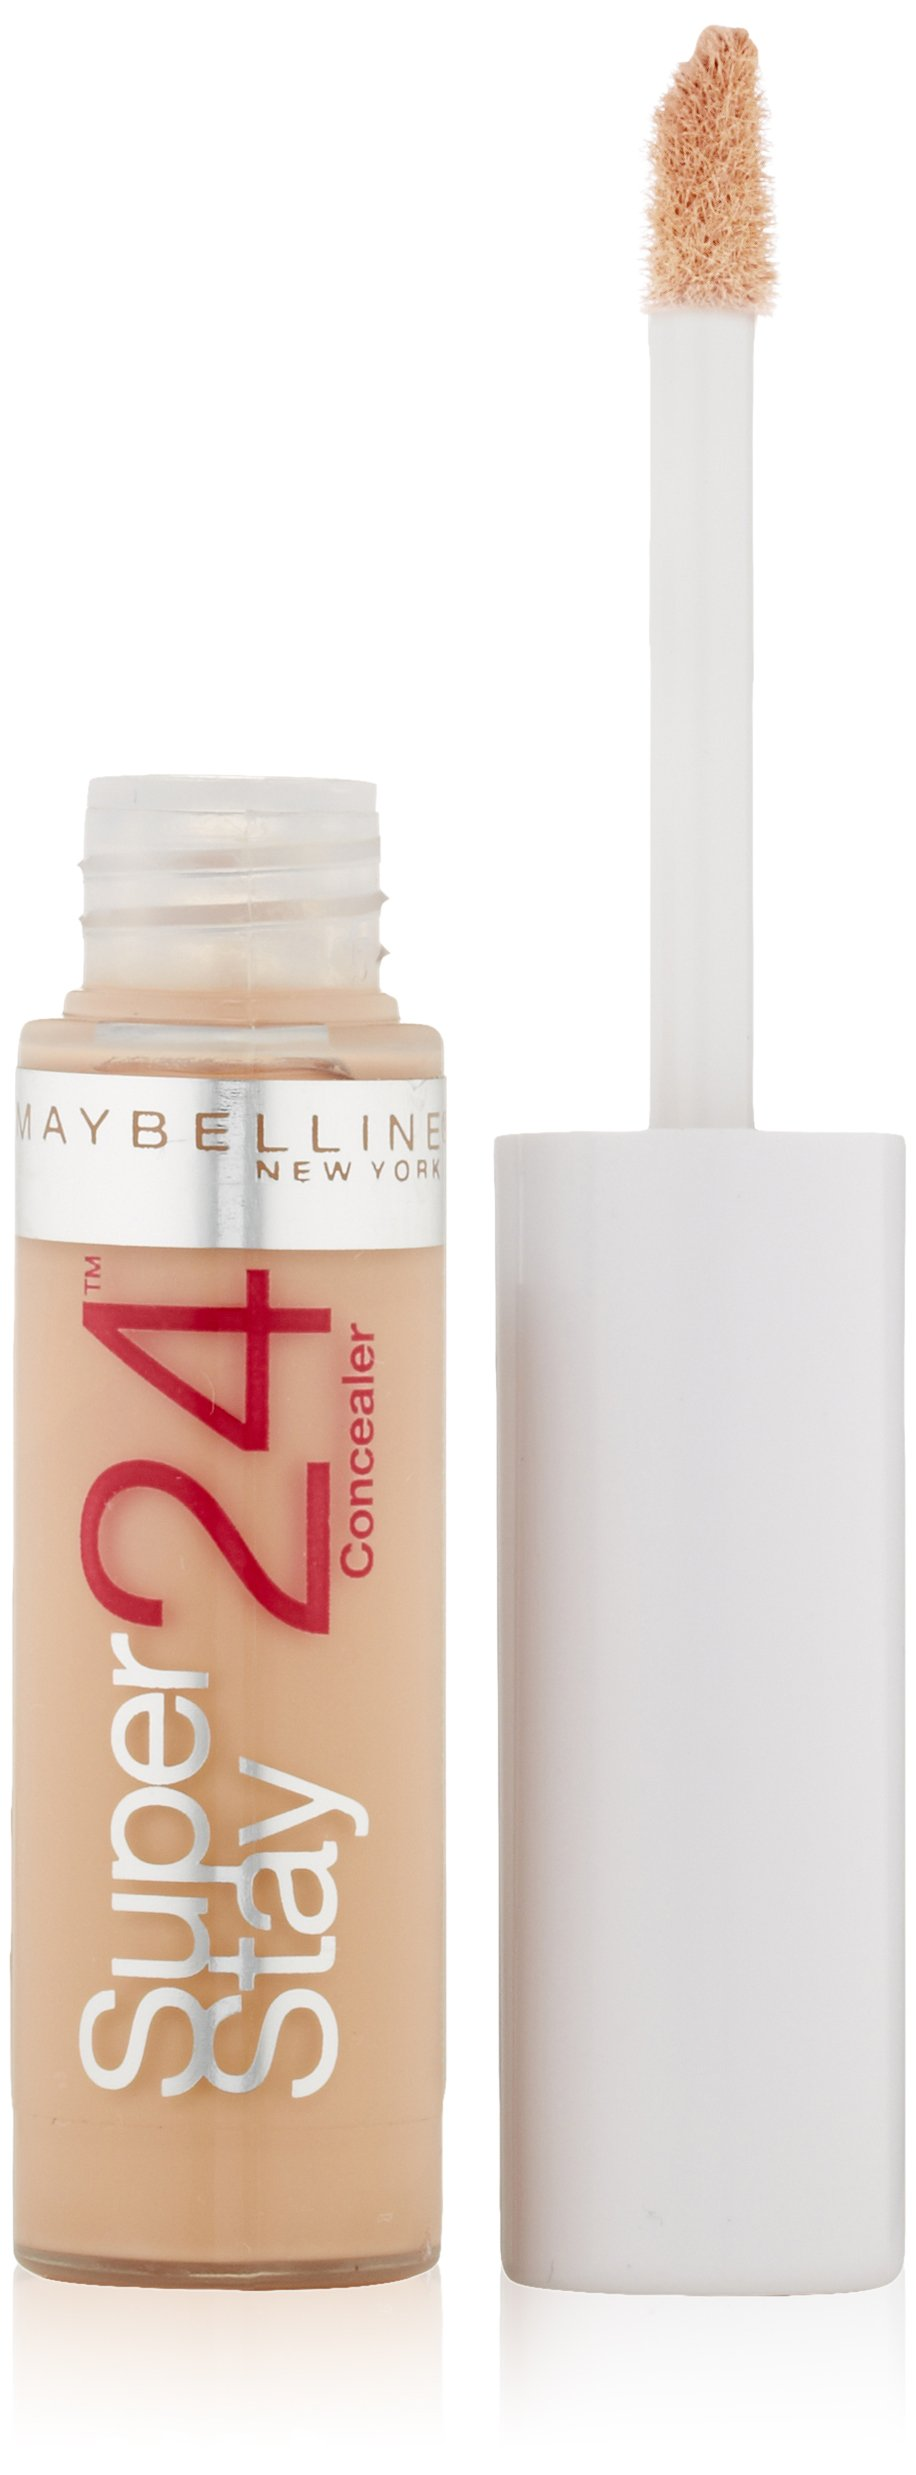 Maybelline New York Super Stay 24Hr Concealer, Cream 720, 0.18 Fluid Ounce